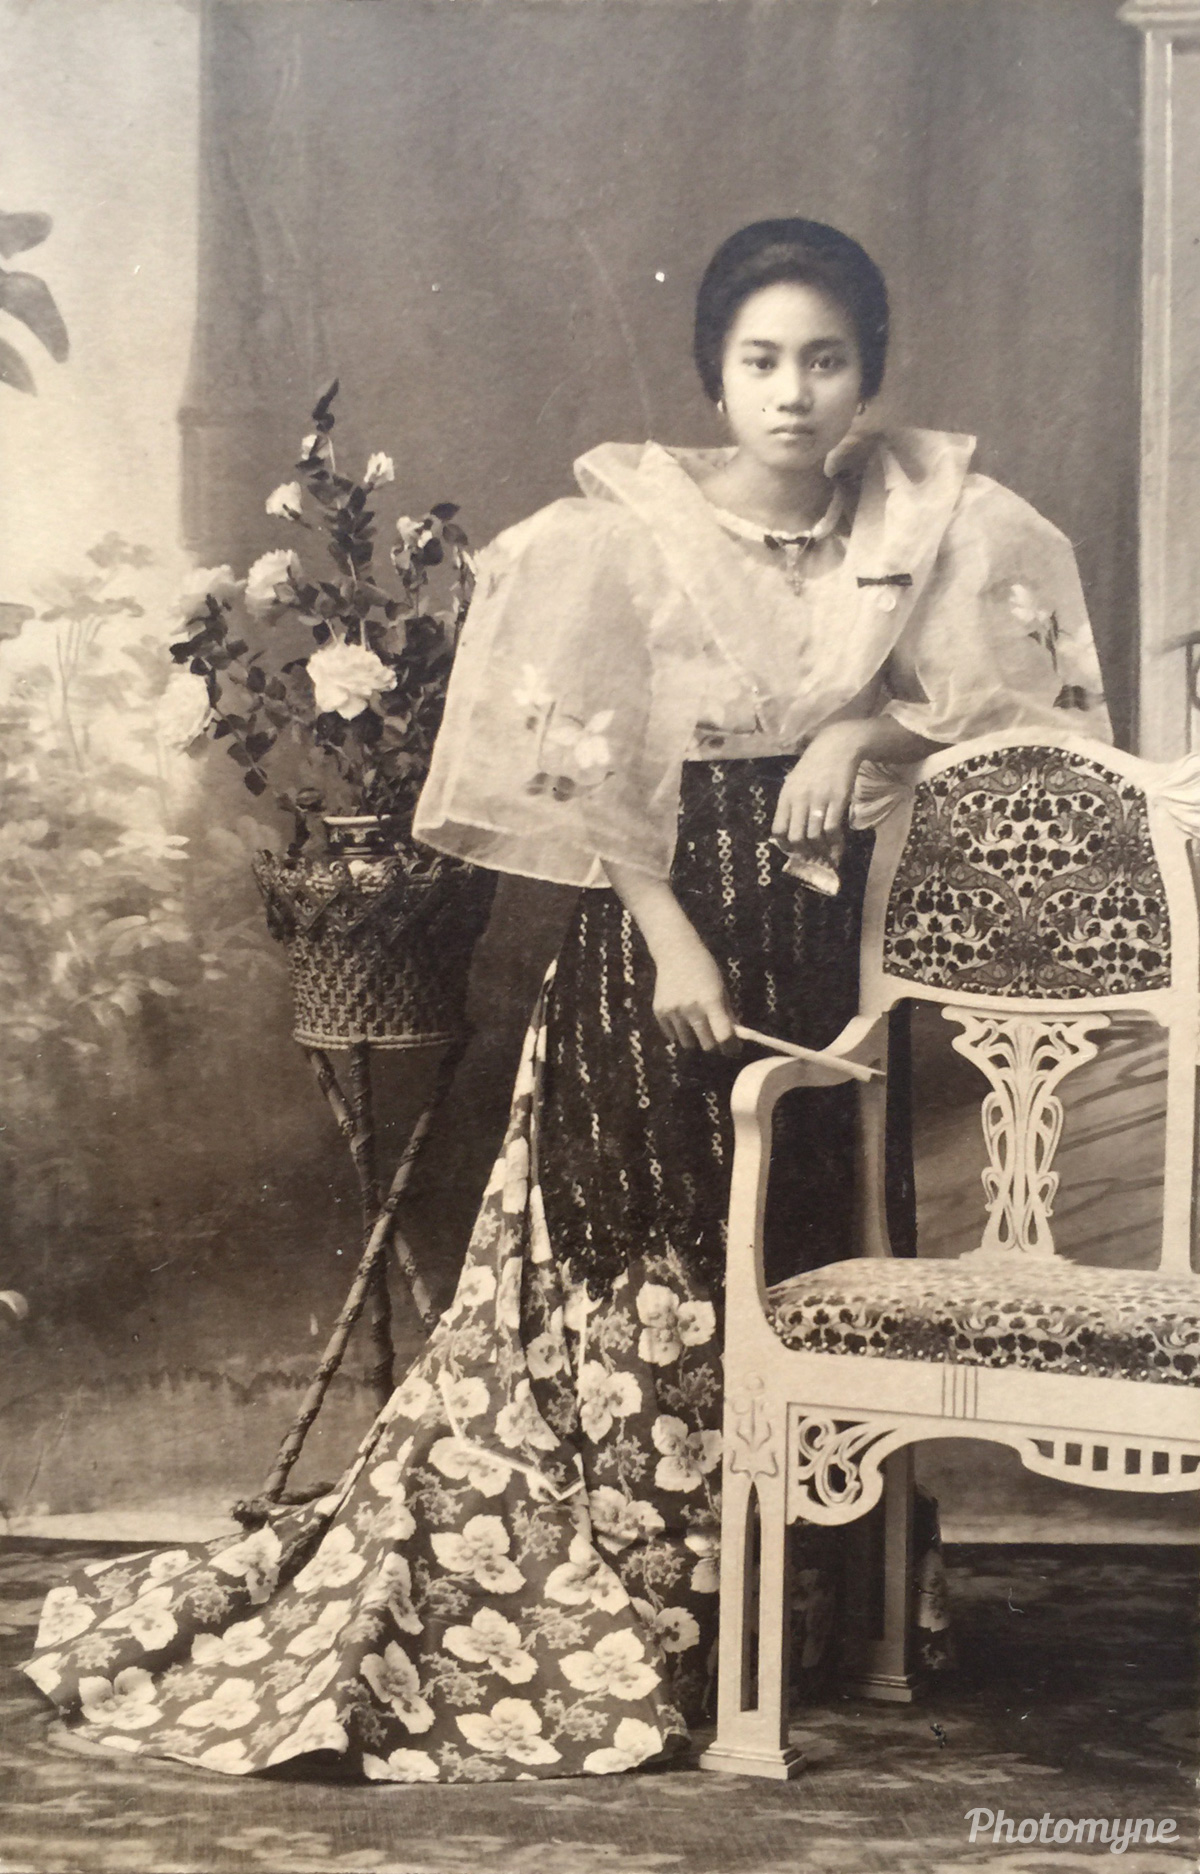 My Lola (Grandmother) Mercedes Tiglao, Mabalacat, Pampanga, Philippines, 1918